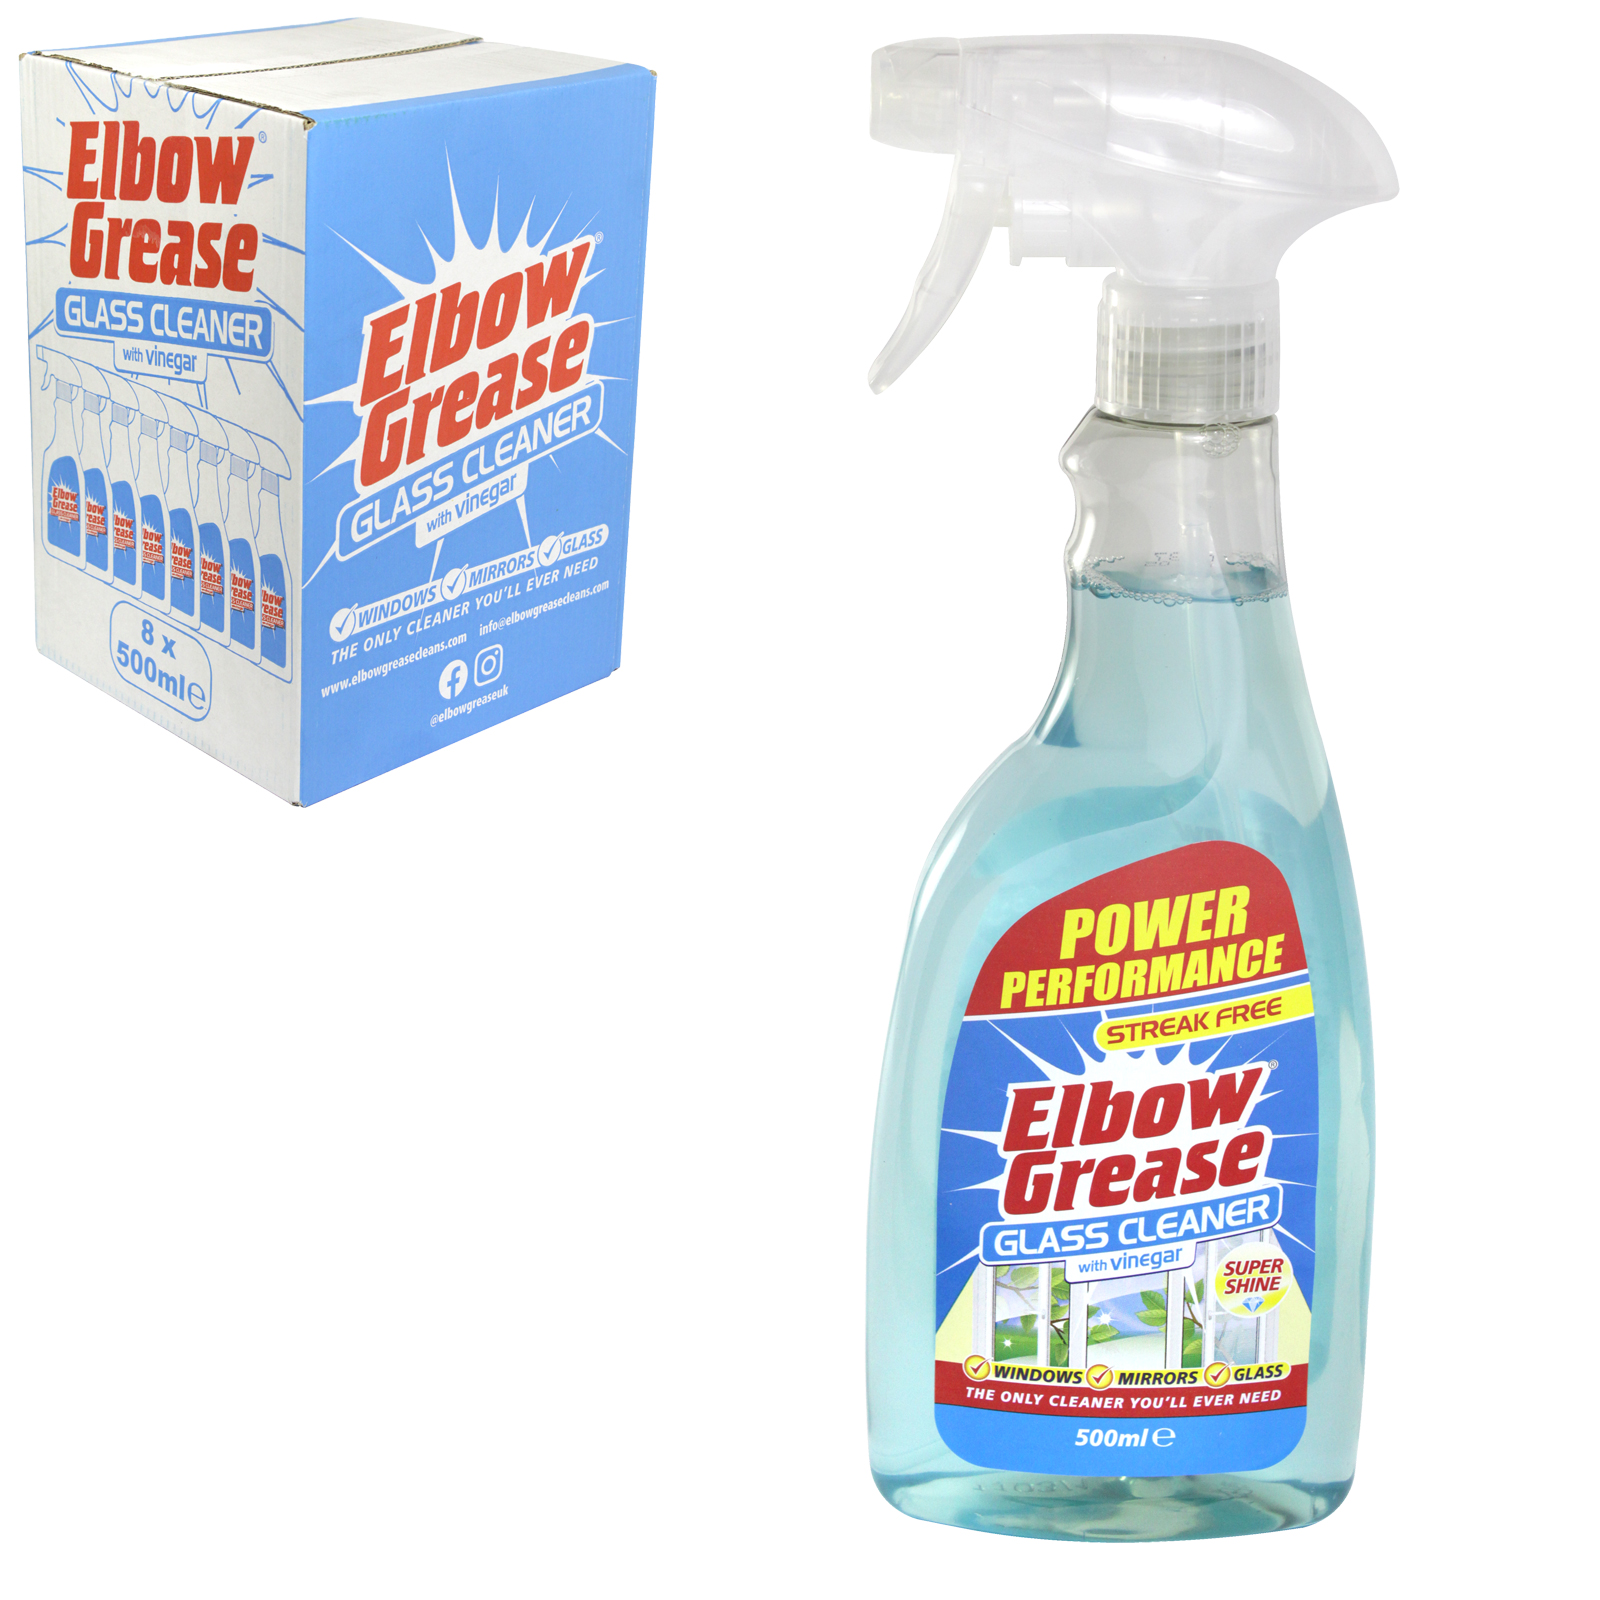 151 ELBOW GREASE 500ML GLASS CLEANER WITH VINEGAR X8